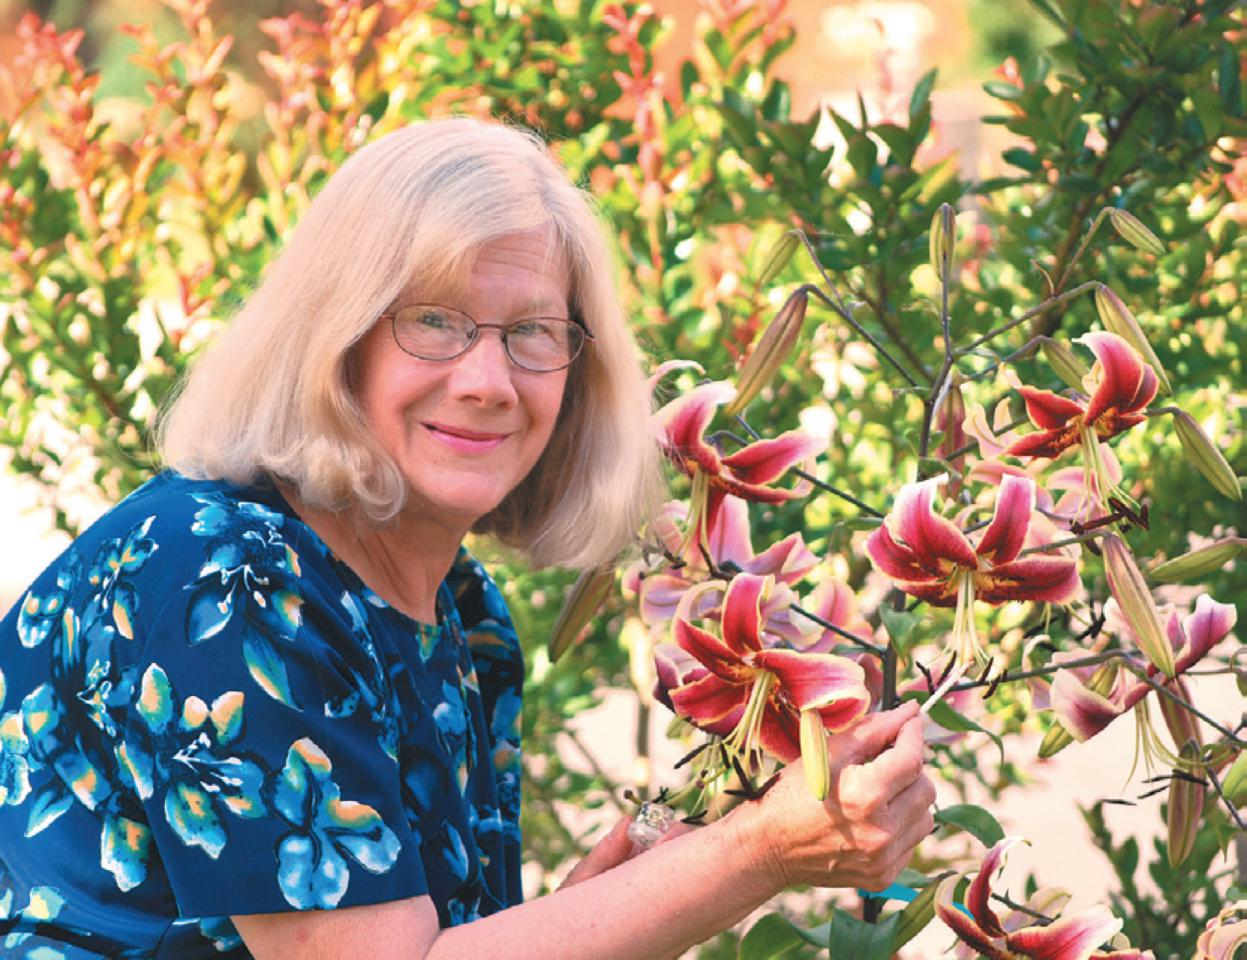 Judith Freeman, - geneticist and lily hybridizer for 40+ years.Our own unique Lily Garden creations are marked (LG), born and bred on our farm!Because we grow them all ourselves, here on our own farm, we absolutely guarantee every bulb to grow and bloom.We photograph all our lilies in the field to show you how they really look.